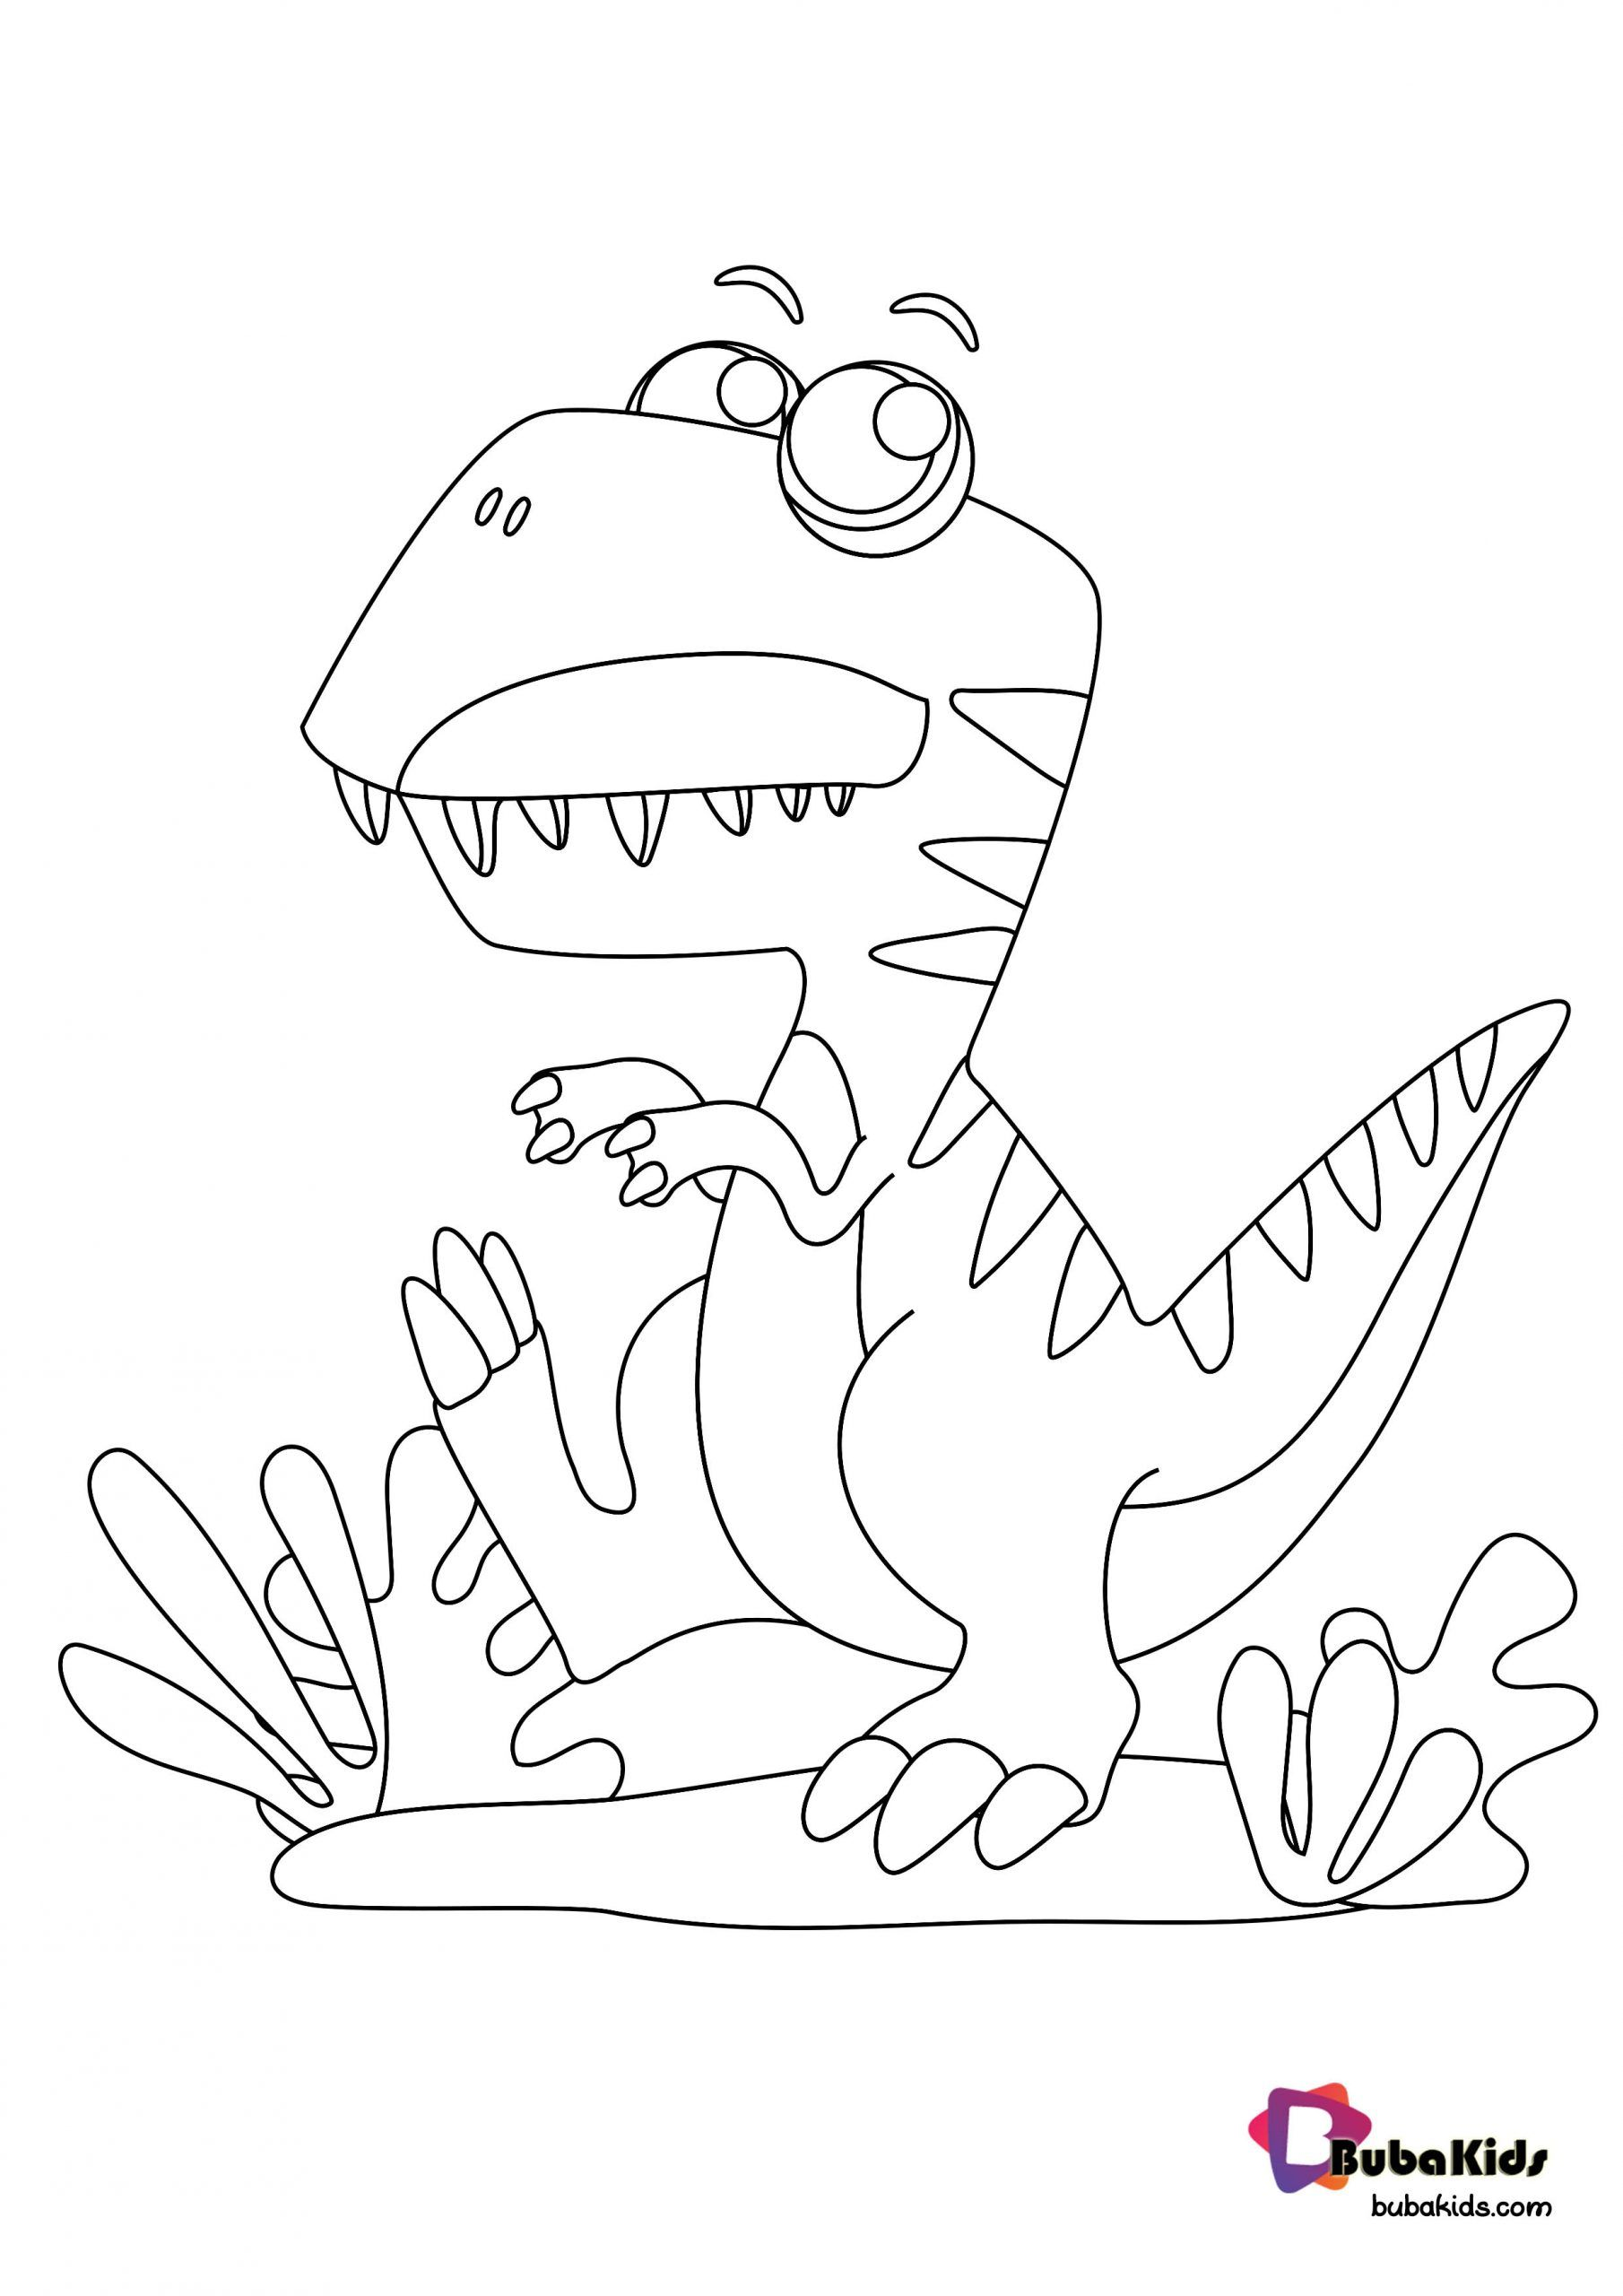 Cute T Rex Coloring Page Printable For Kids Collection Of Dinosaurs Coloring Pages For Teenage Printable Tha In 2020 Dinosaur Coloring Pages Coloring Pages Cute T Rex